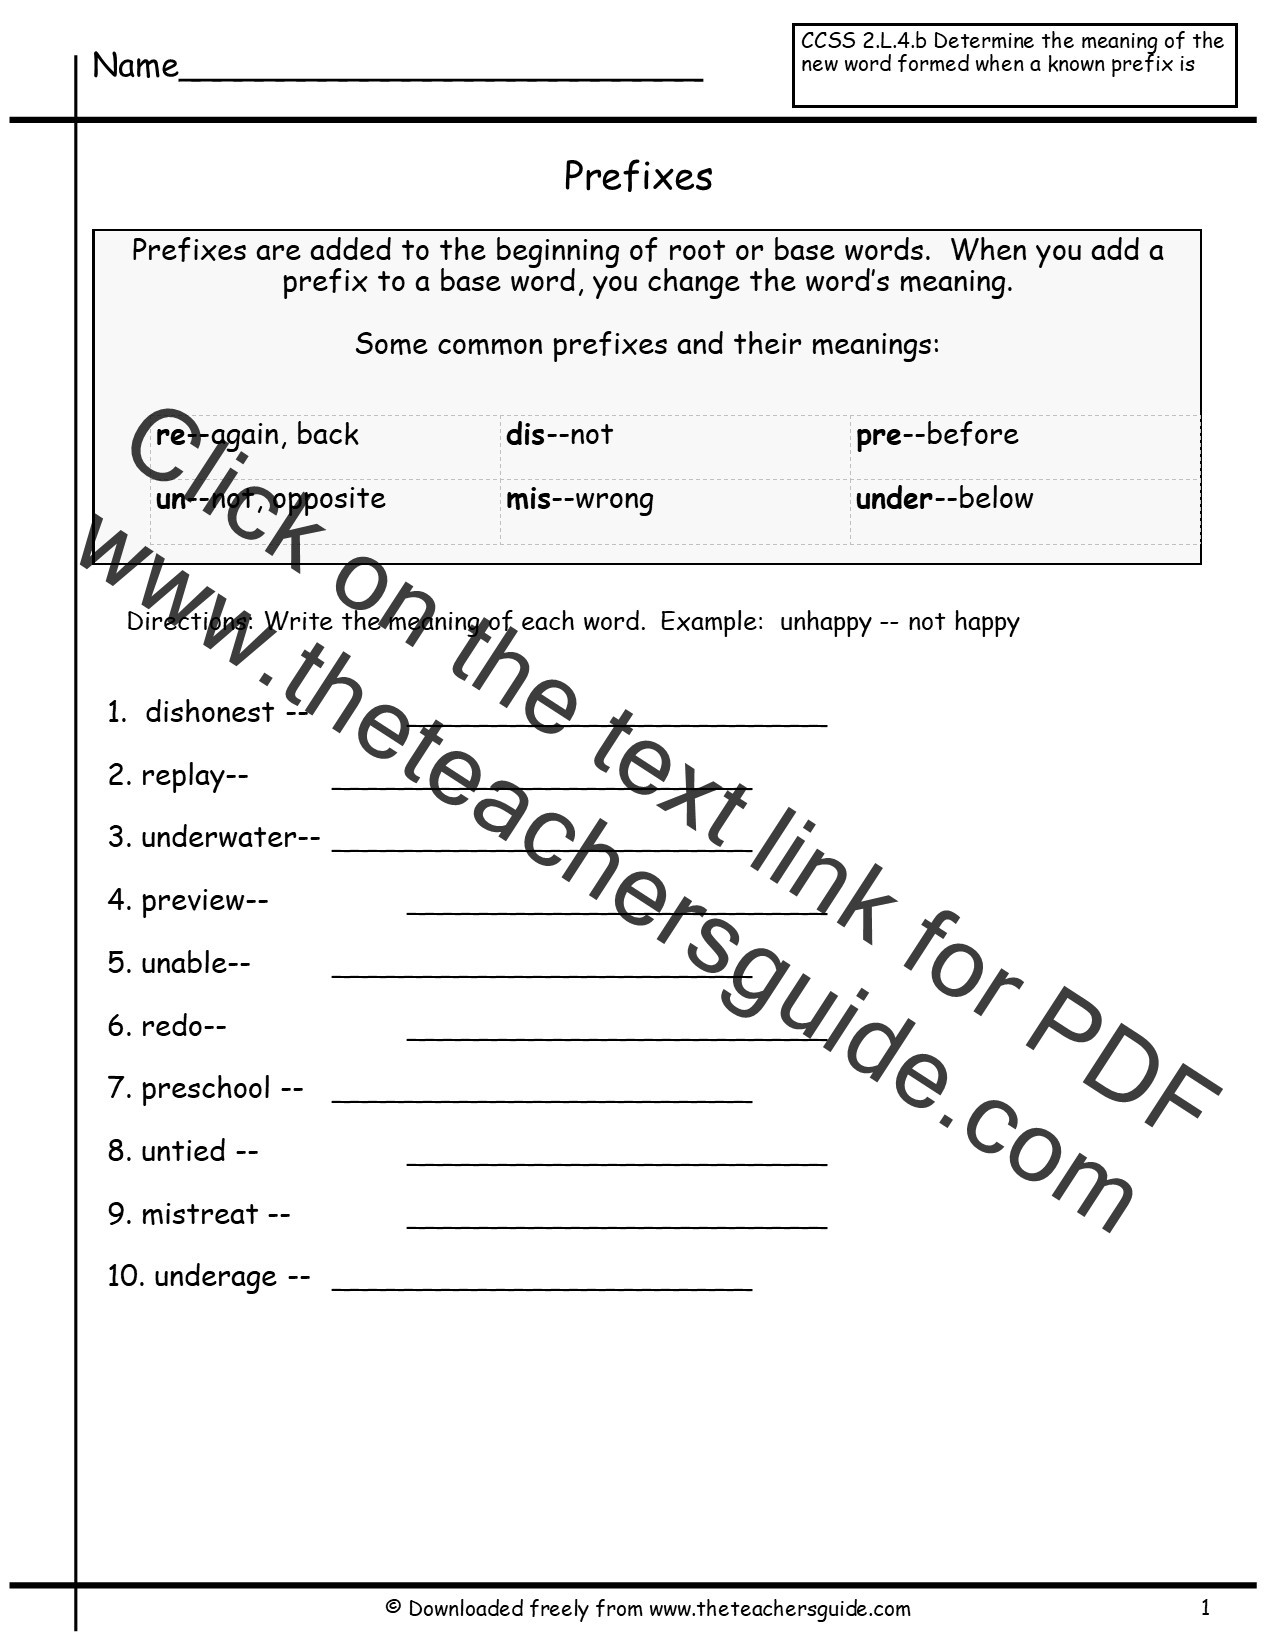 Prefixes Worksheets 4th Grade Free Prefixes and Suffixes Worksheets From the Teacher S Guide